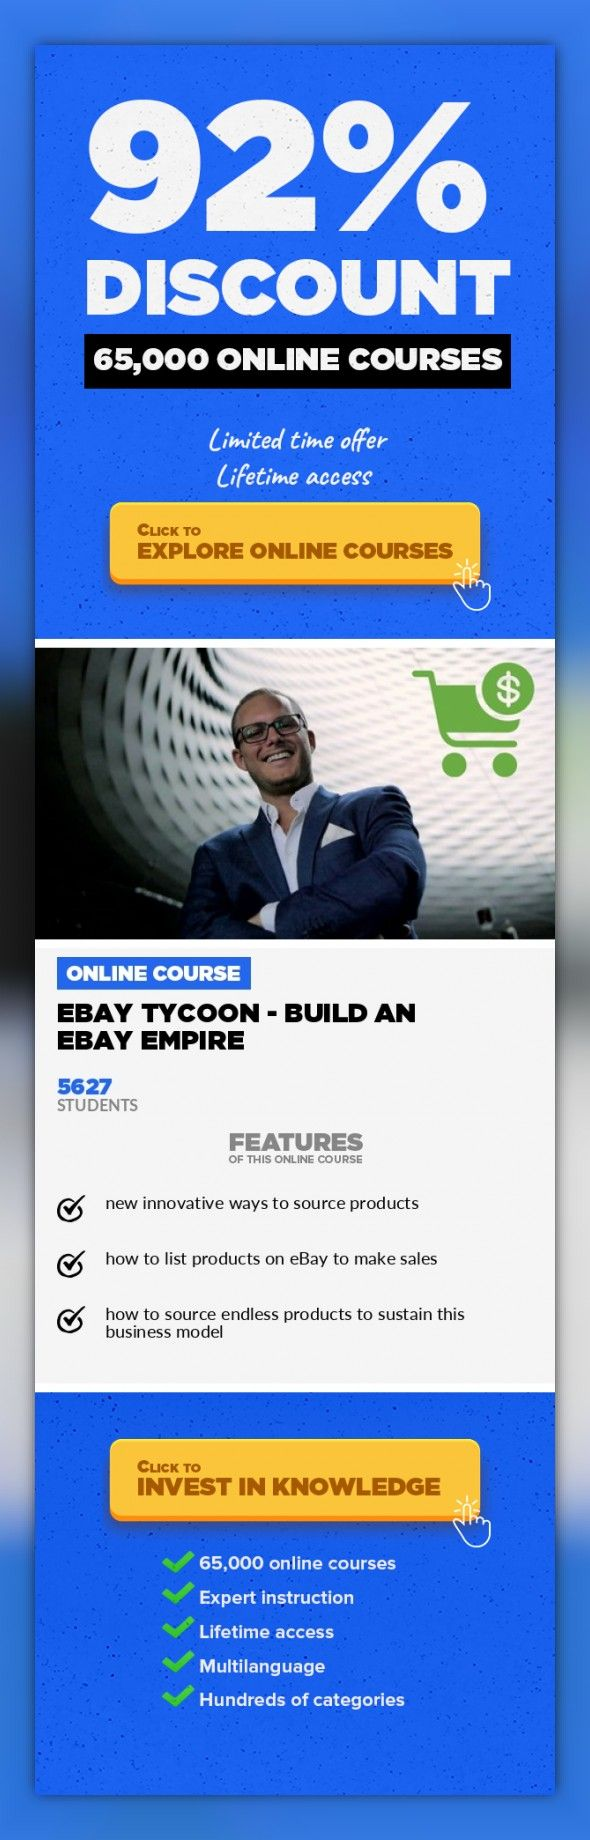 Ebay tycoon build an ebay empire home business business how to